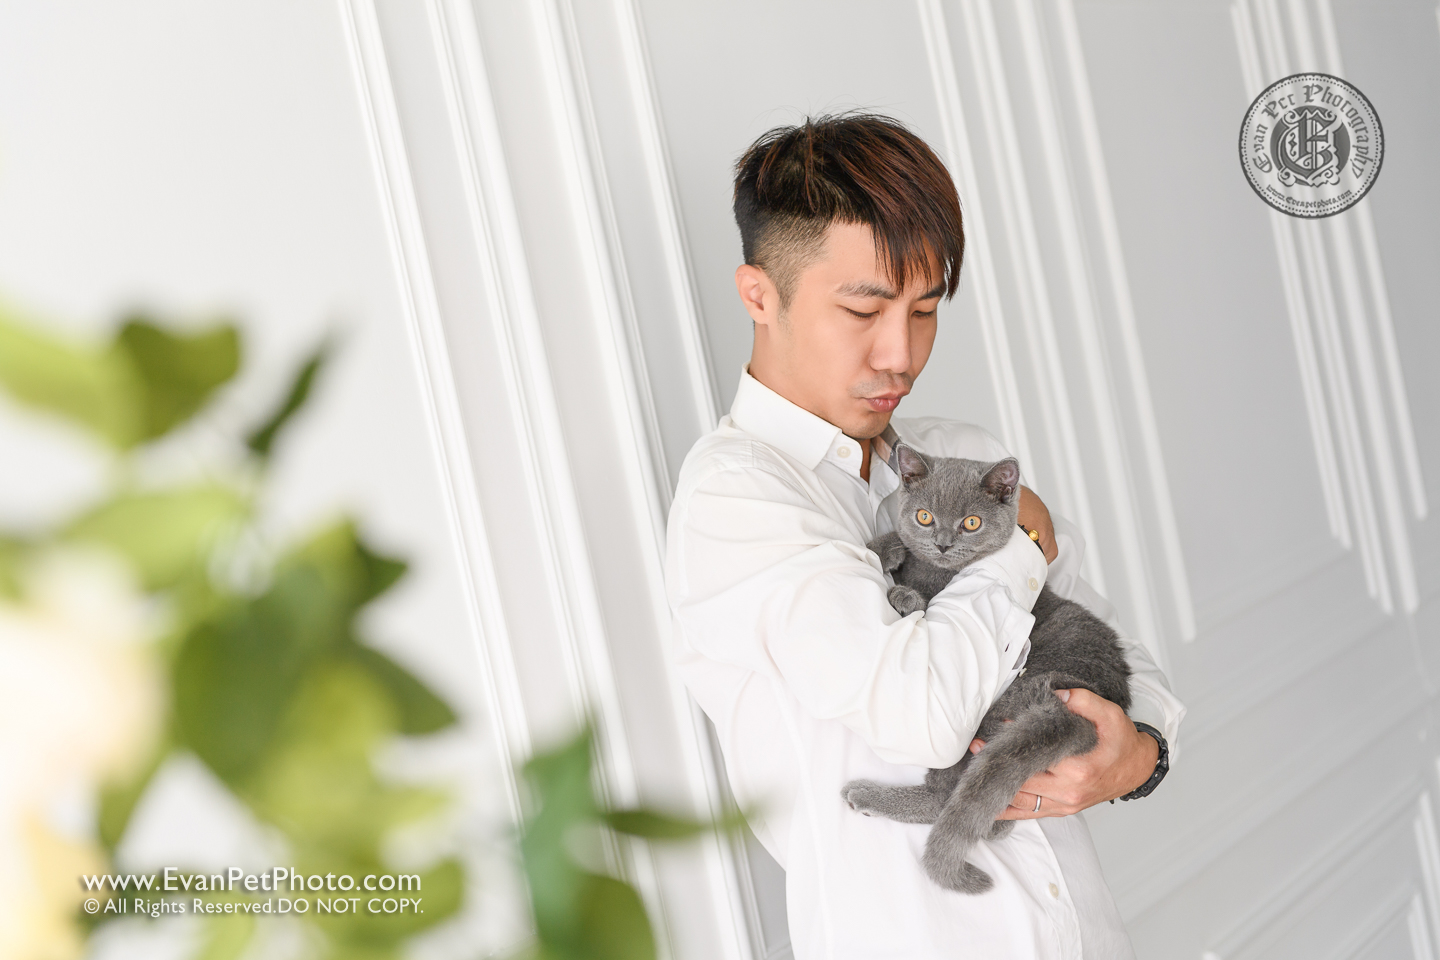 cat Photography, Studio cat Photography, 影樓寵物攝影, 貓影樓, cat photography, 英國短毛貓攝影, 寵物攝影, 寵物影樓, cat studio, 香港寵物影樓, hong kong cat studio, pet studio, British Short Hair cat, 英國短毛貓, 異國短毛貓